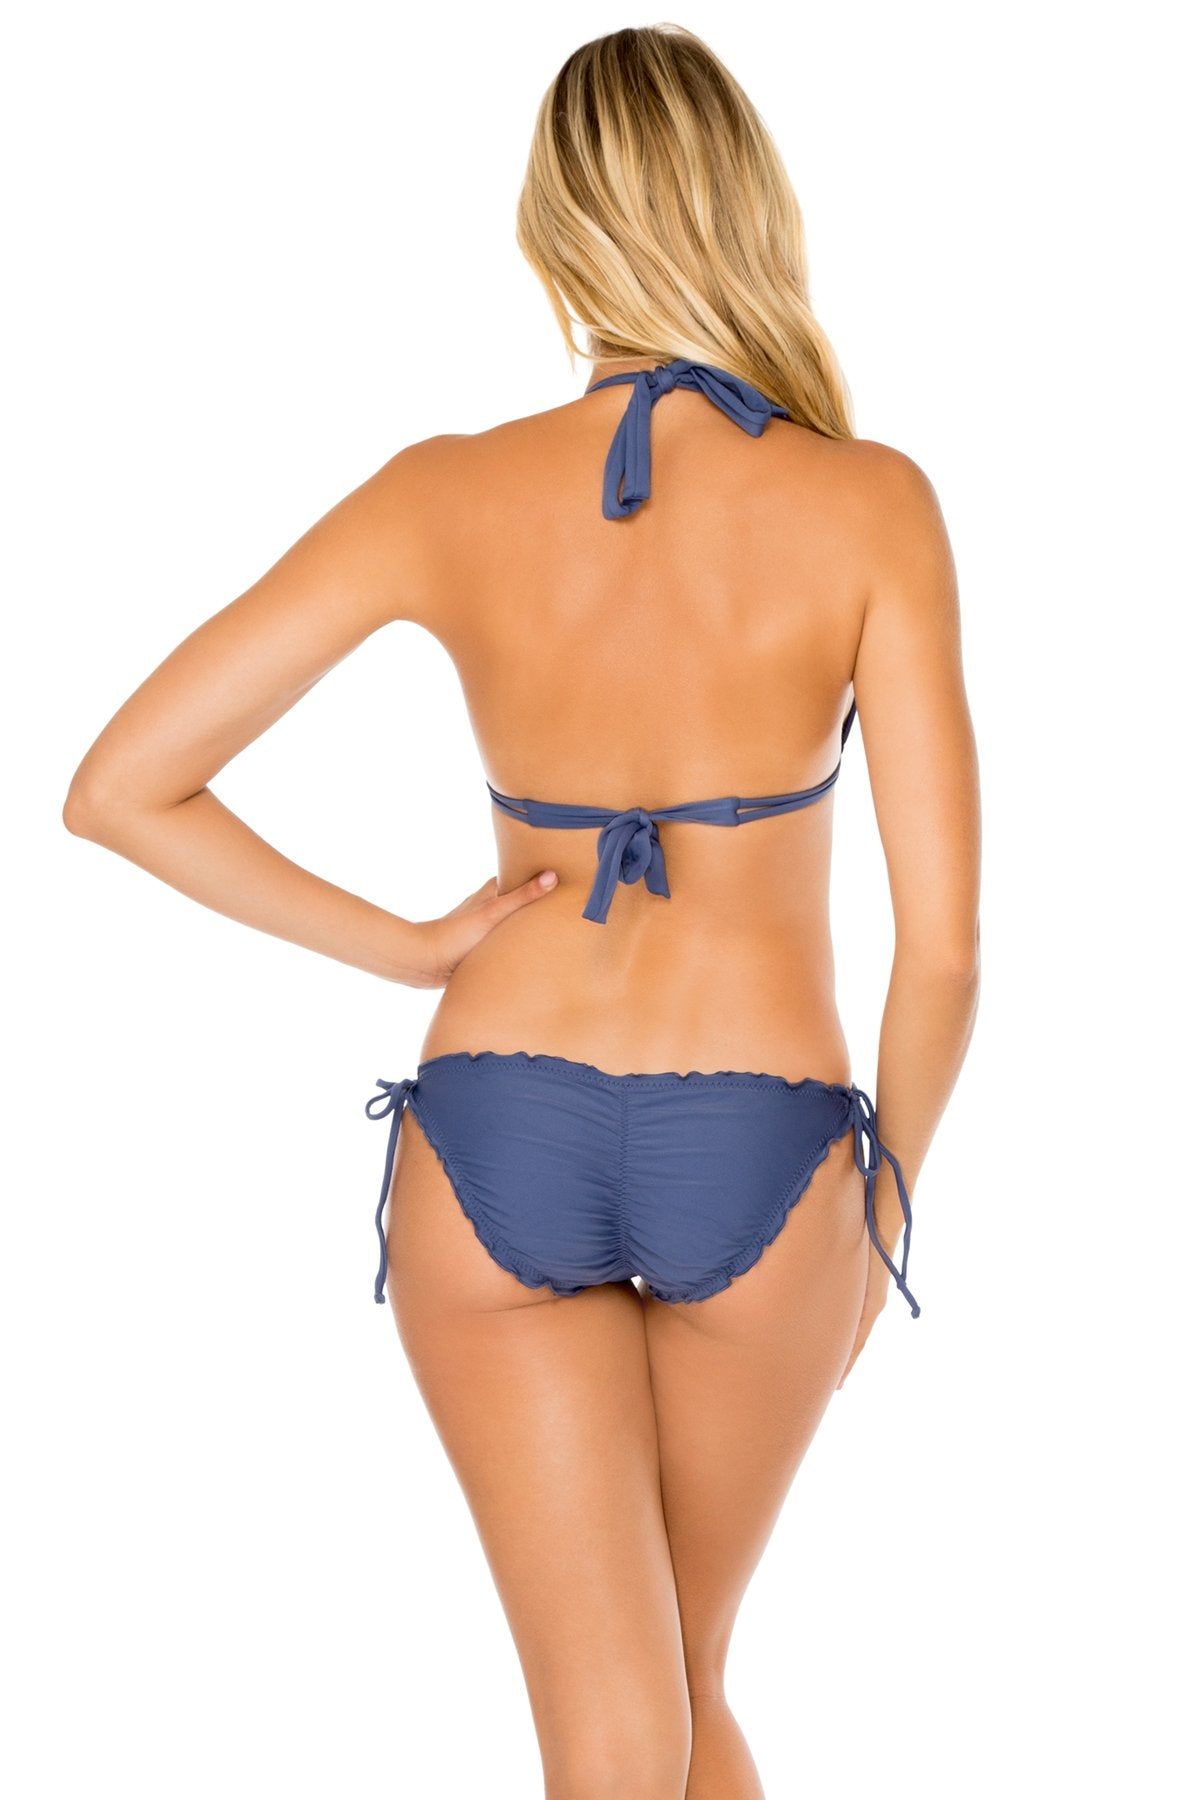 COSITA BUENA - Halter Triangle Top & Wavey Ruched Back Full Tie Side Bottom • Azulejos